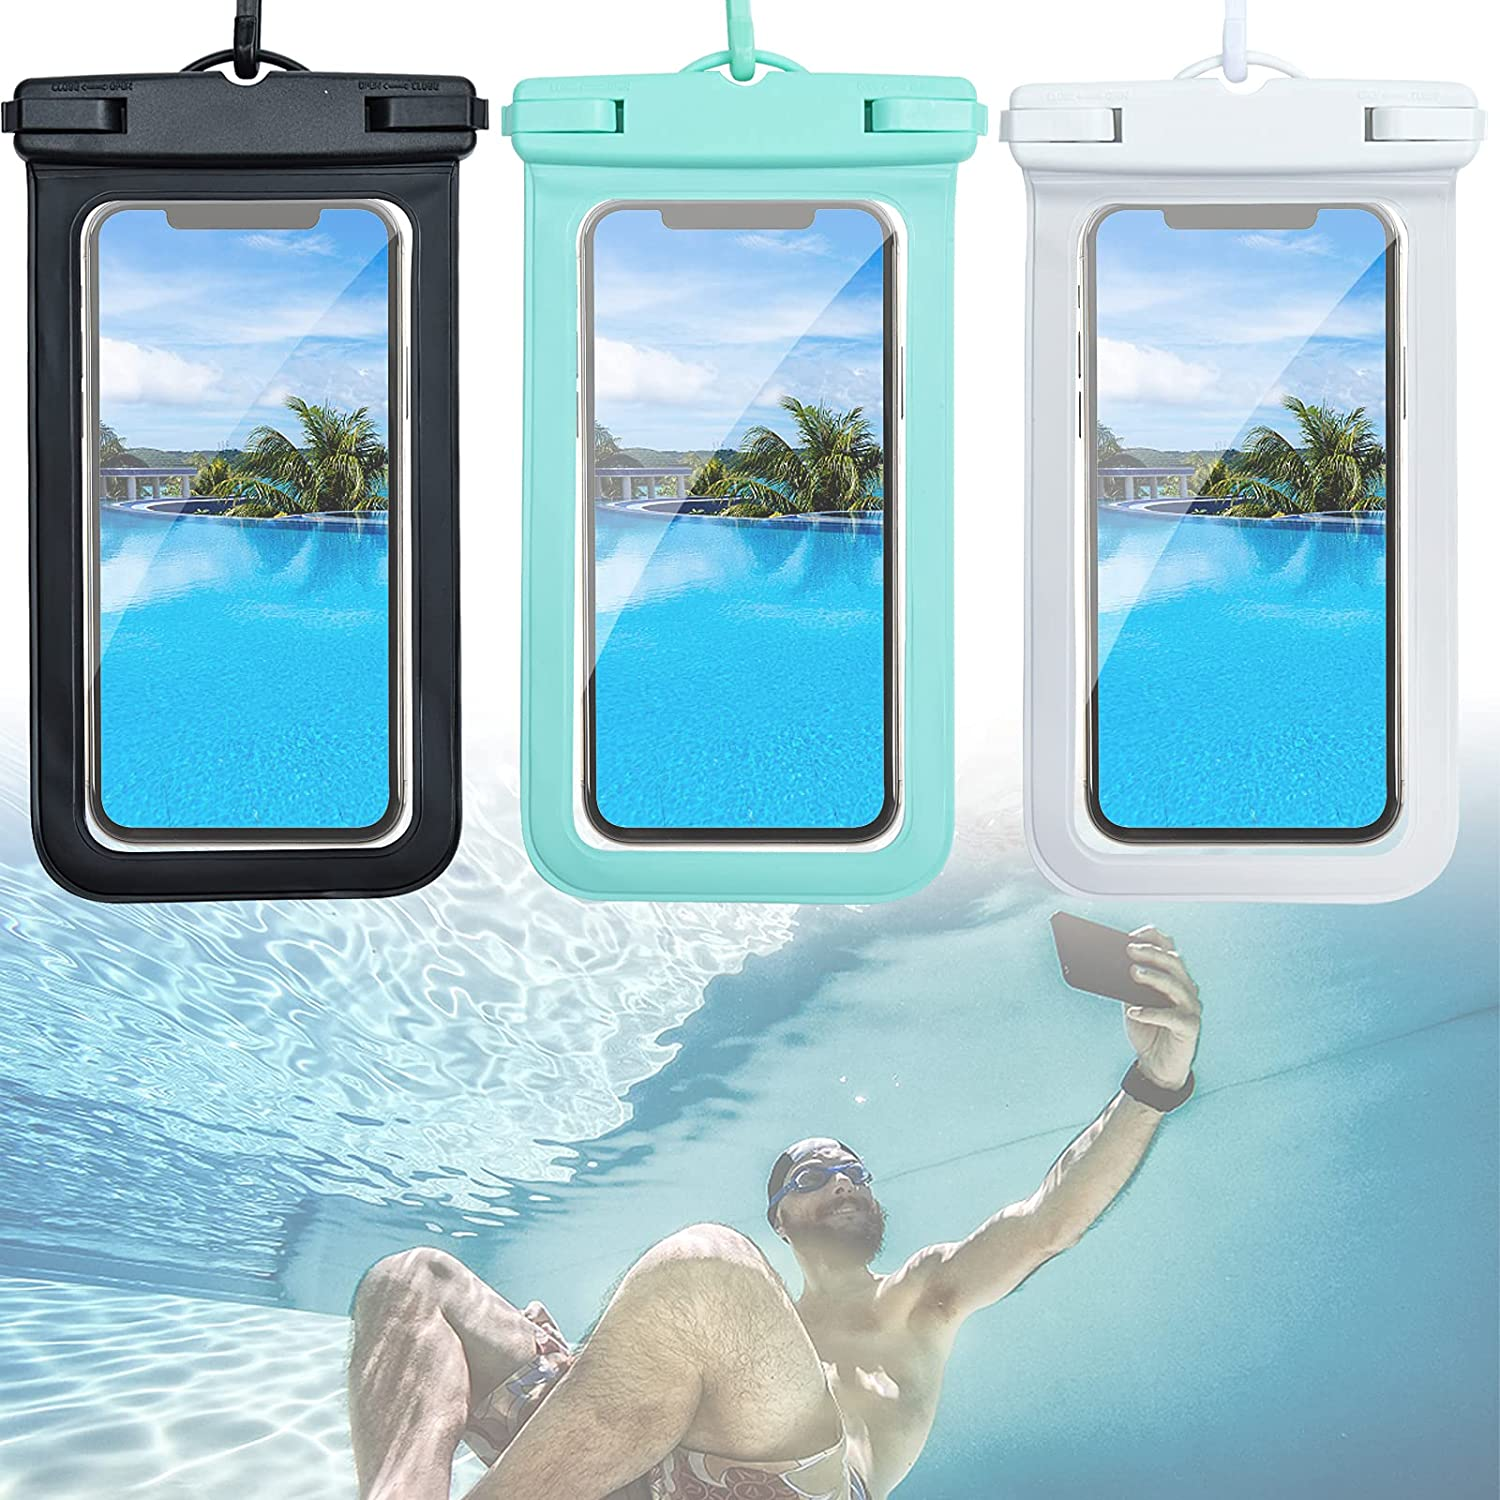 Universal Waterproof Cell Phone Pouch, 3 Pack Floating IPX8 Waterproof Phone Case Cellphone Pouch Underwater Dry Bag for iPhone 12 Pro Max XR X 8 7 Plus Galaxy up to 7